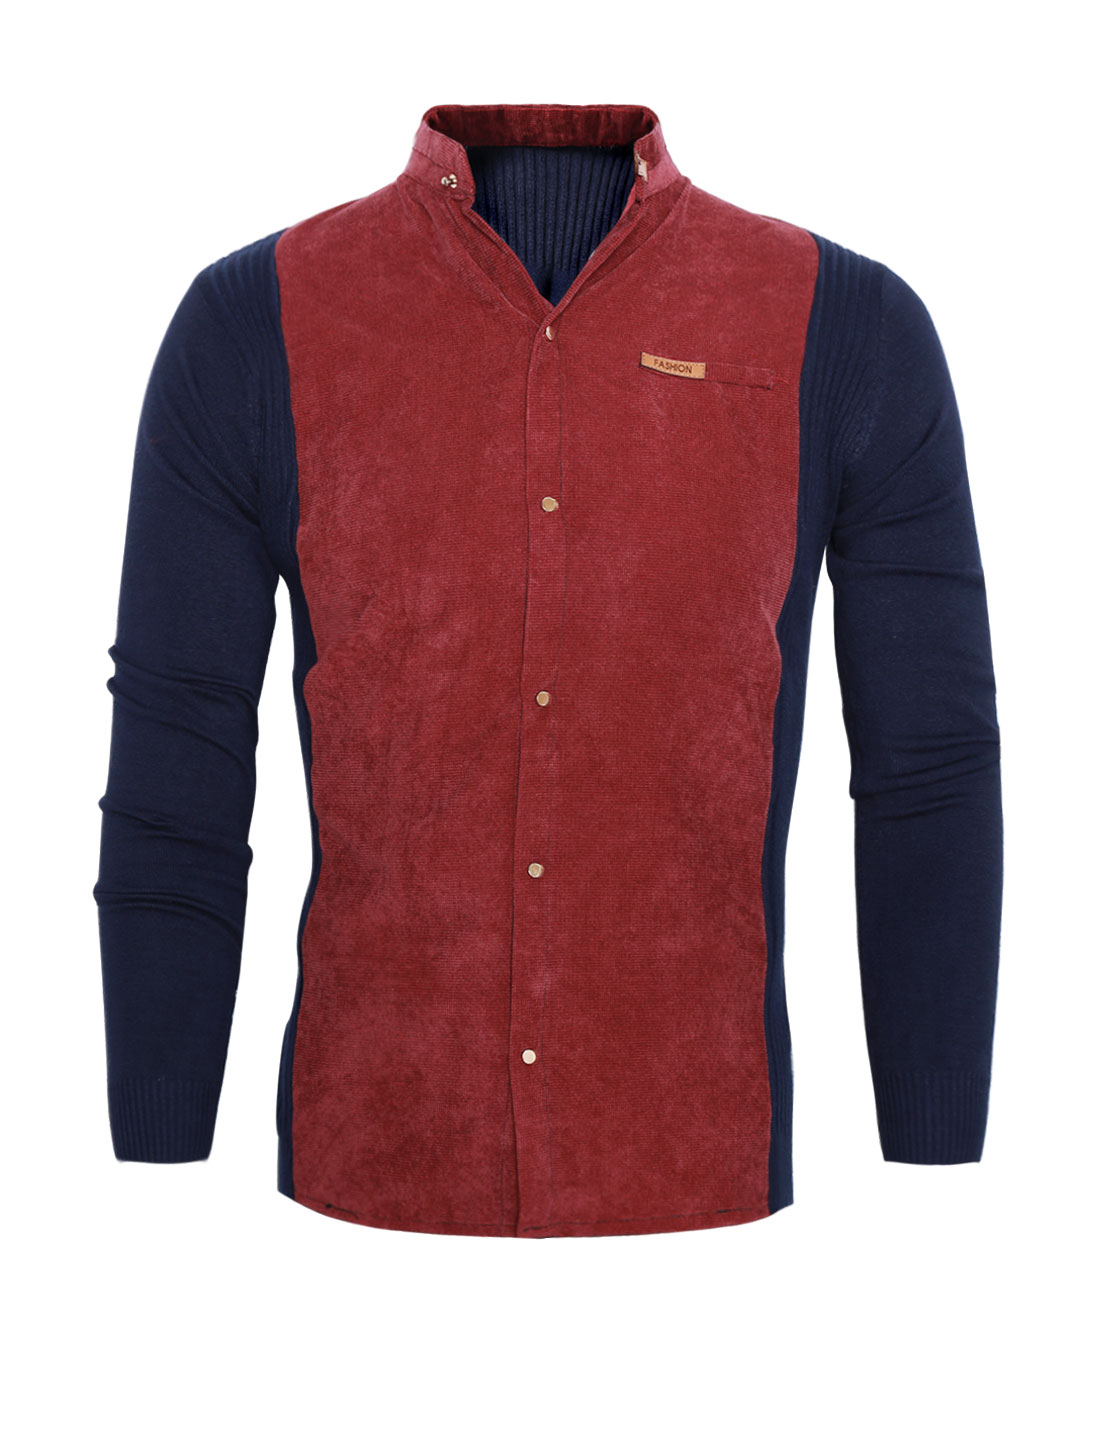 Men Color Block Long Sleeves Corduroy Panel Knit Shirt Red Blue S